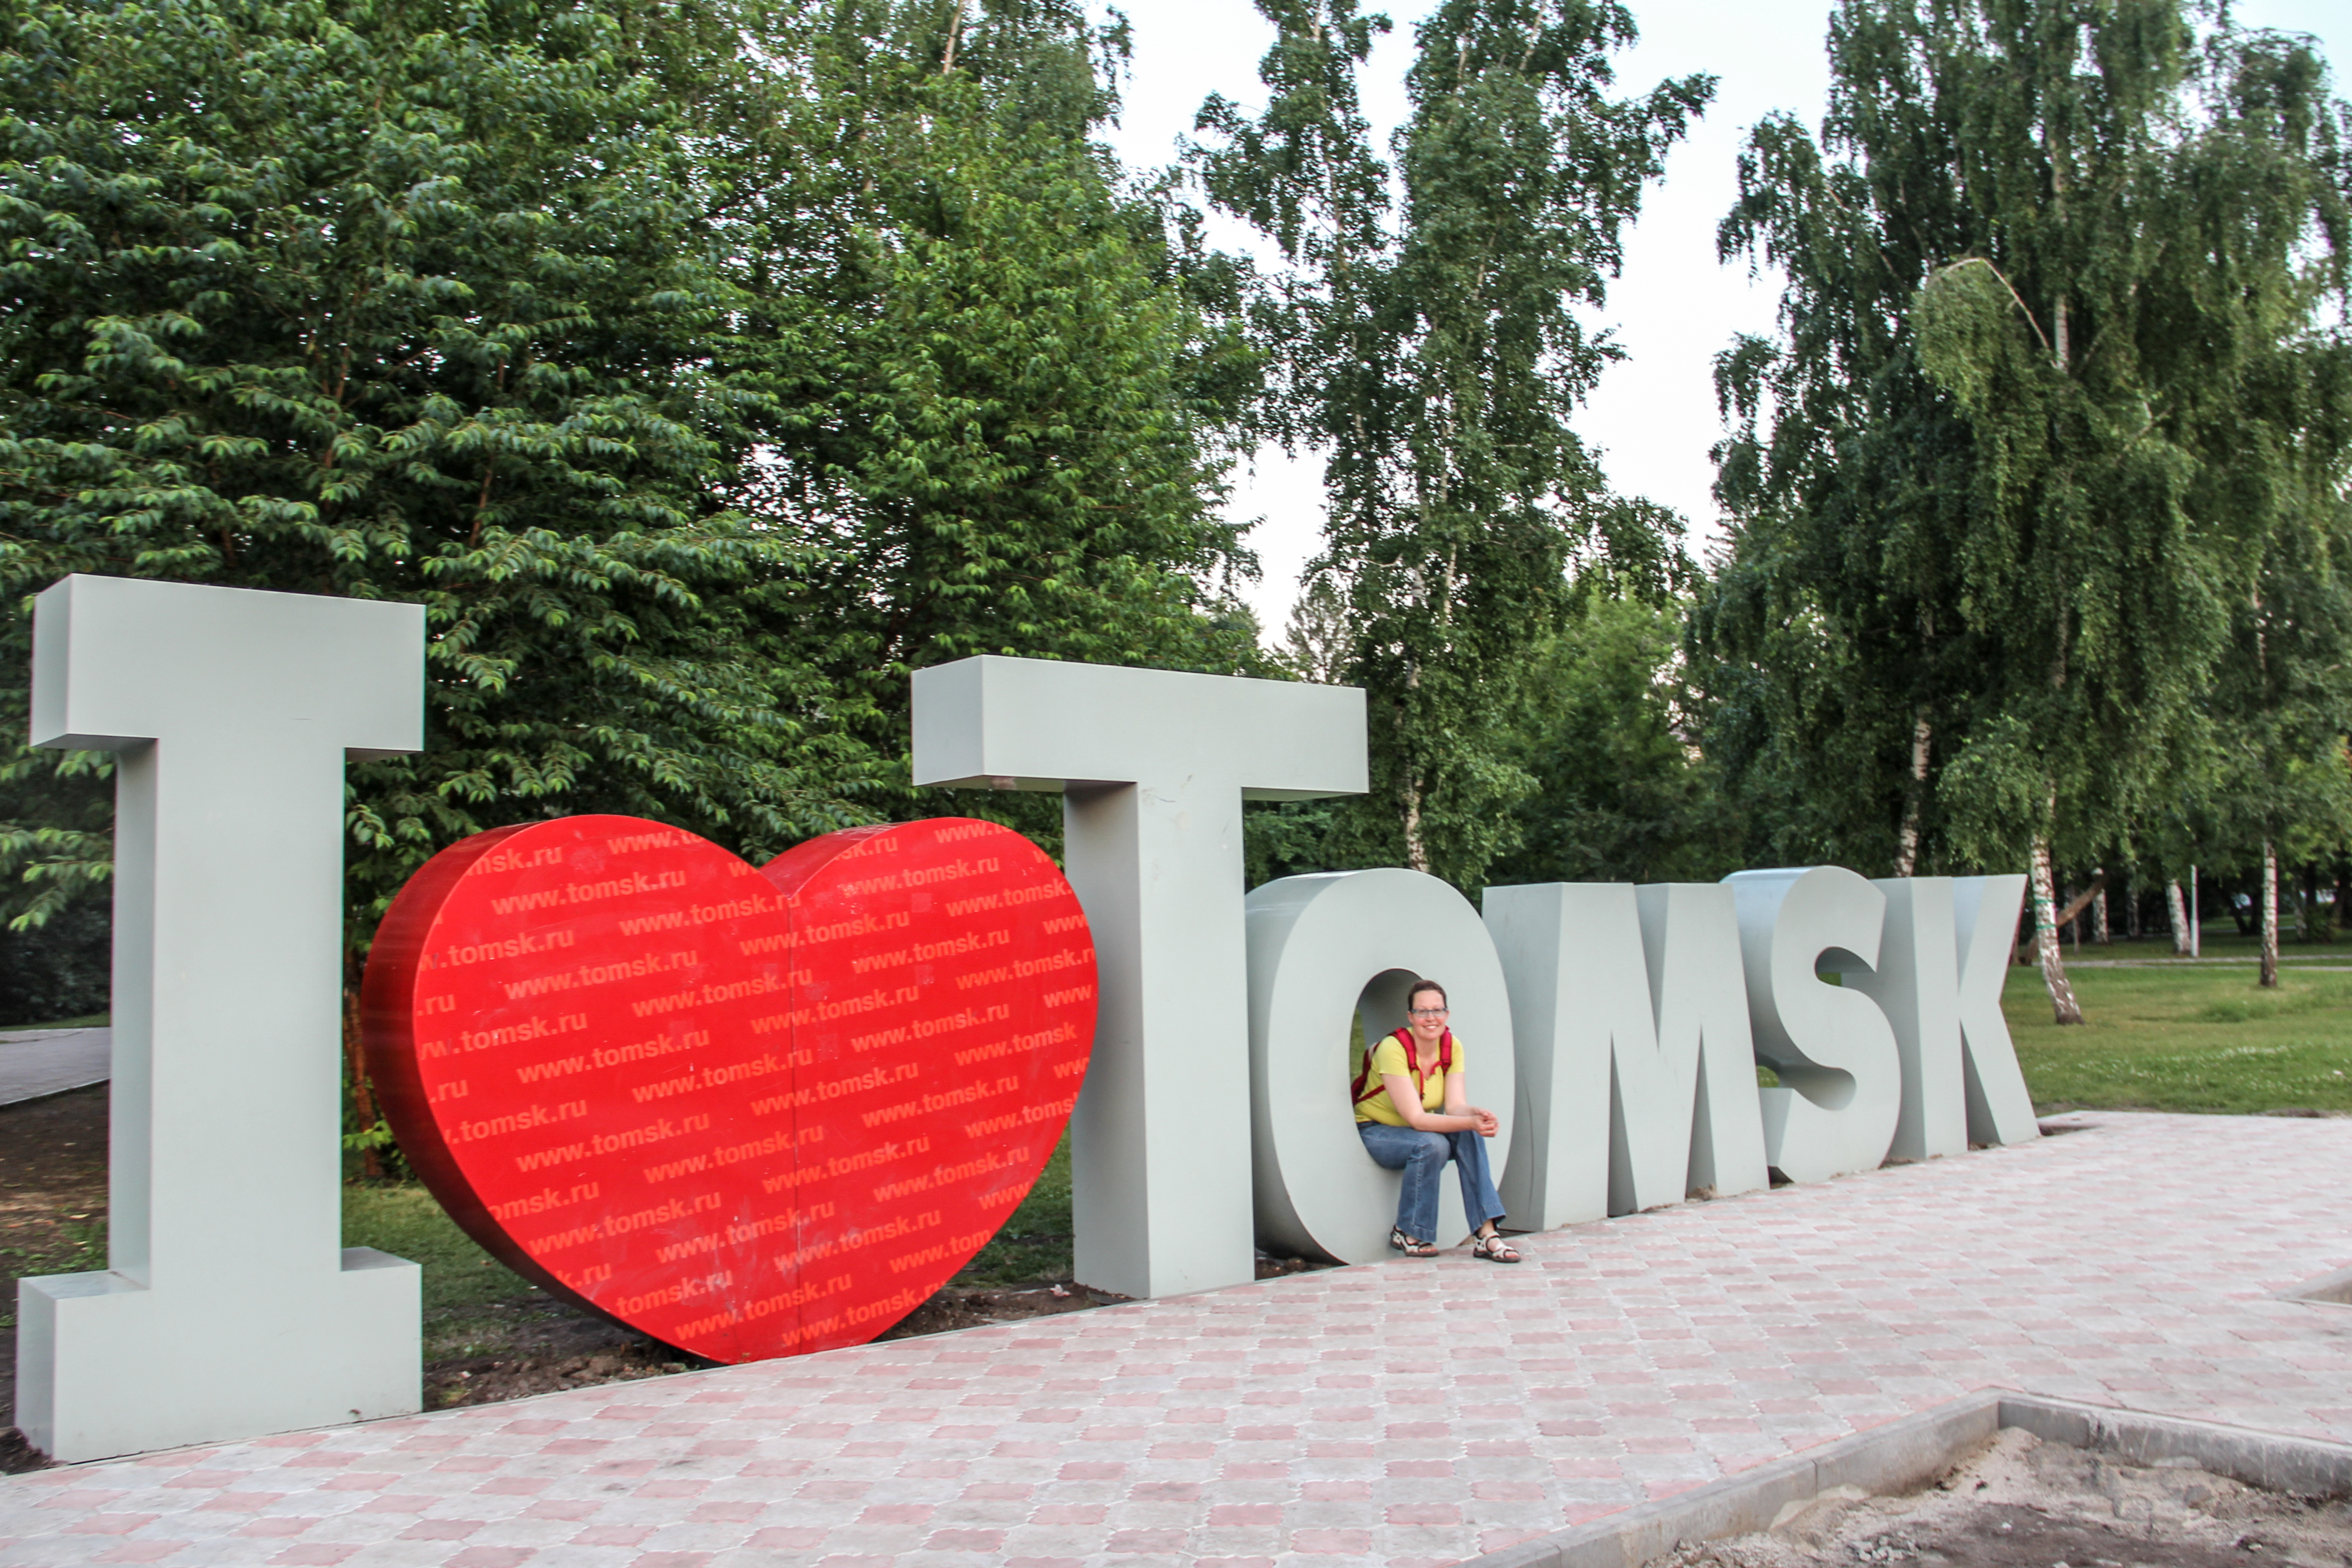 03 Tomsk_cuore russo